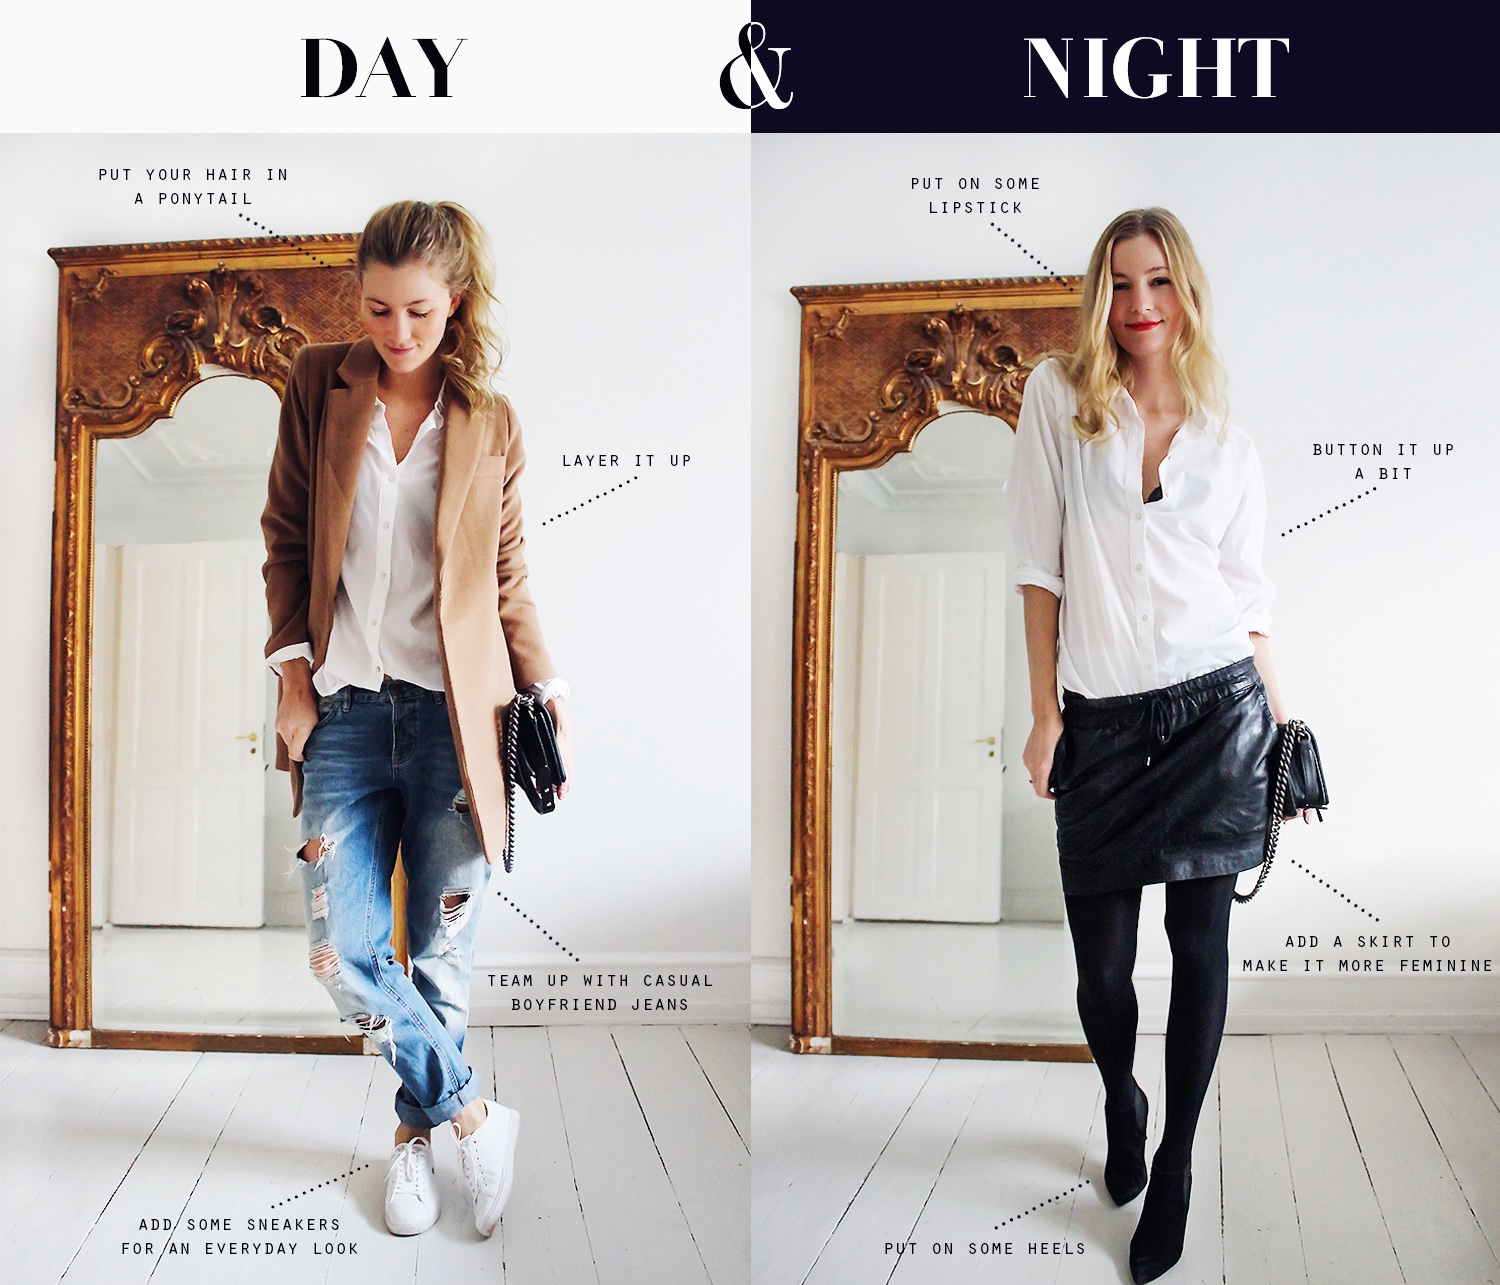 stylist, day-to-night-outfit,-modeblog,-hvid-skjorte,-styling@2x